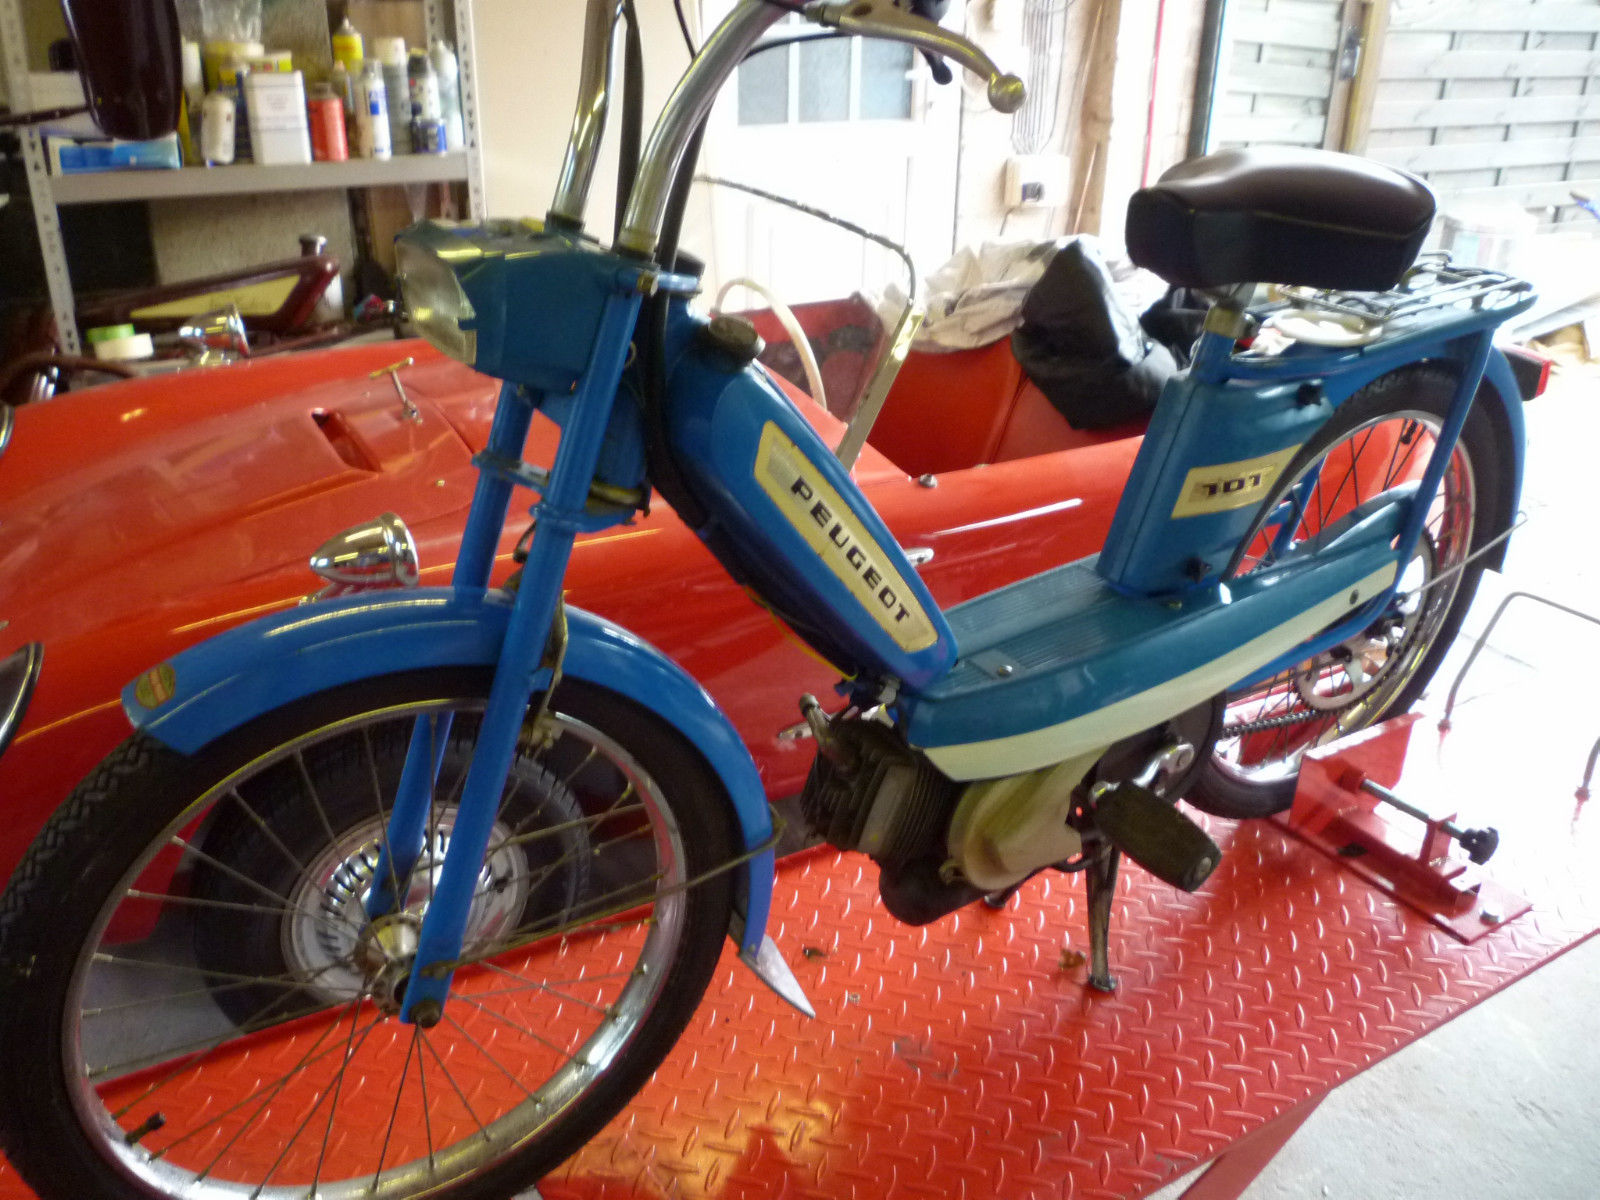 VINTAGE PEUGEOT 101 MOPED/BICYCLE